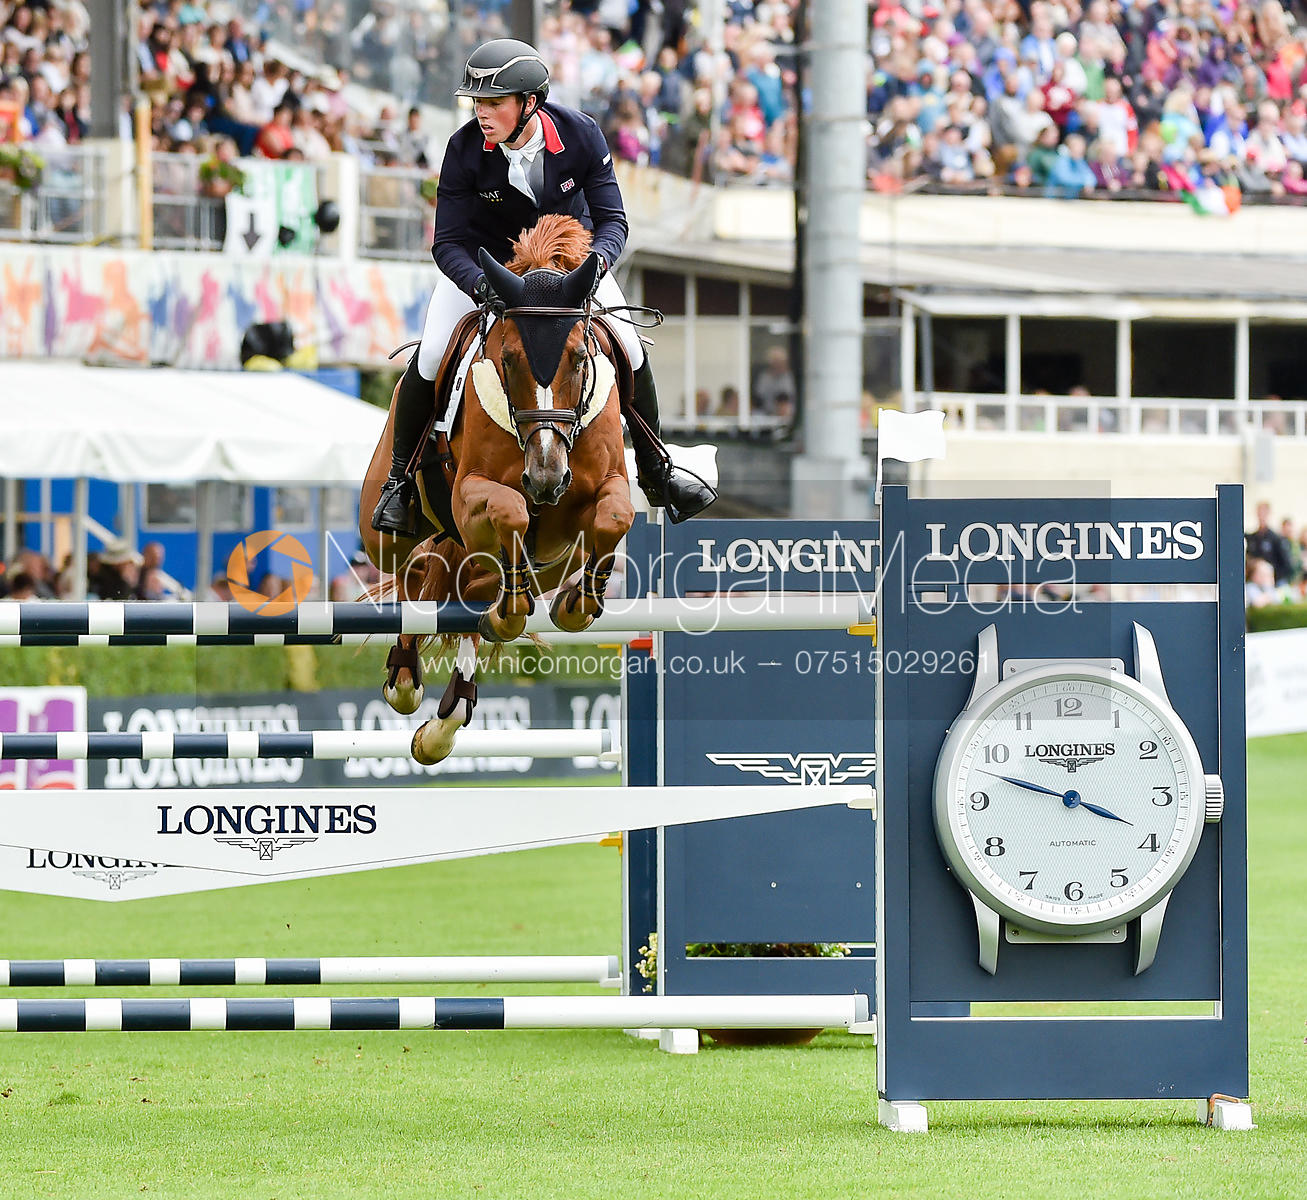 Tim Wilks and QUELBORA MERZE - FEI Nations Cup, Dublin Horse Show 2017